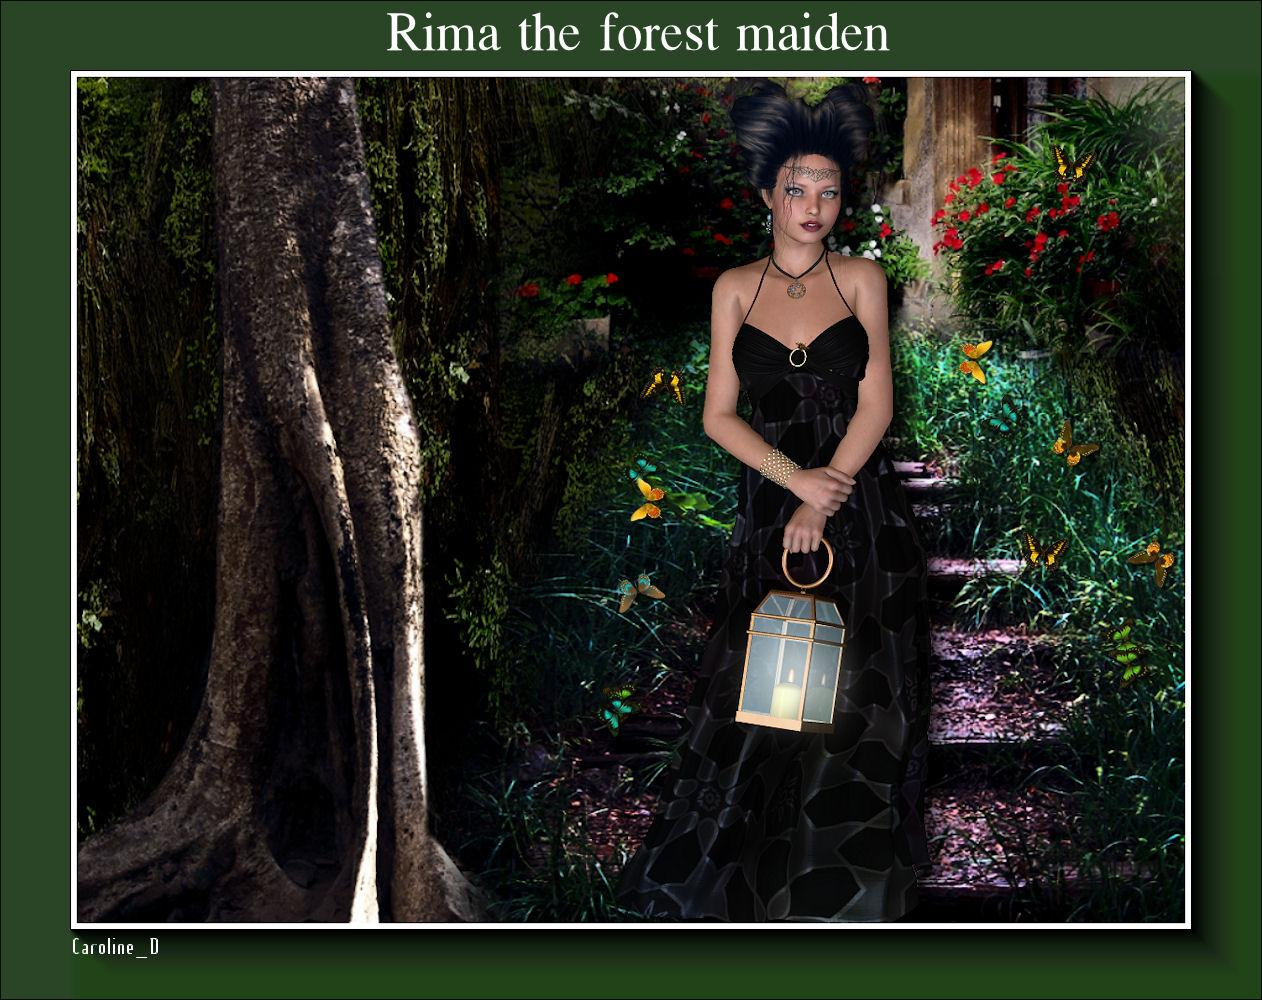 Rima the forest maiden